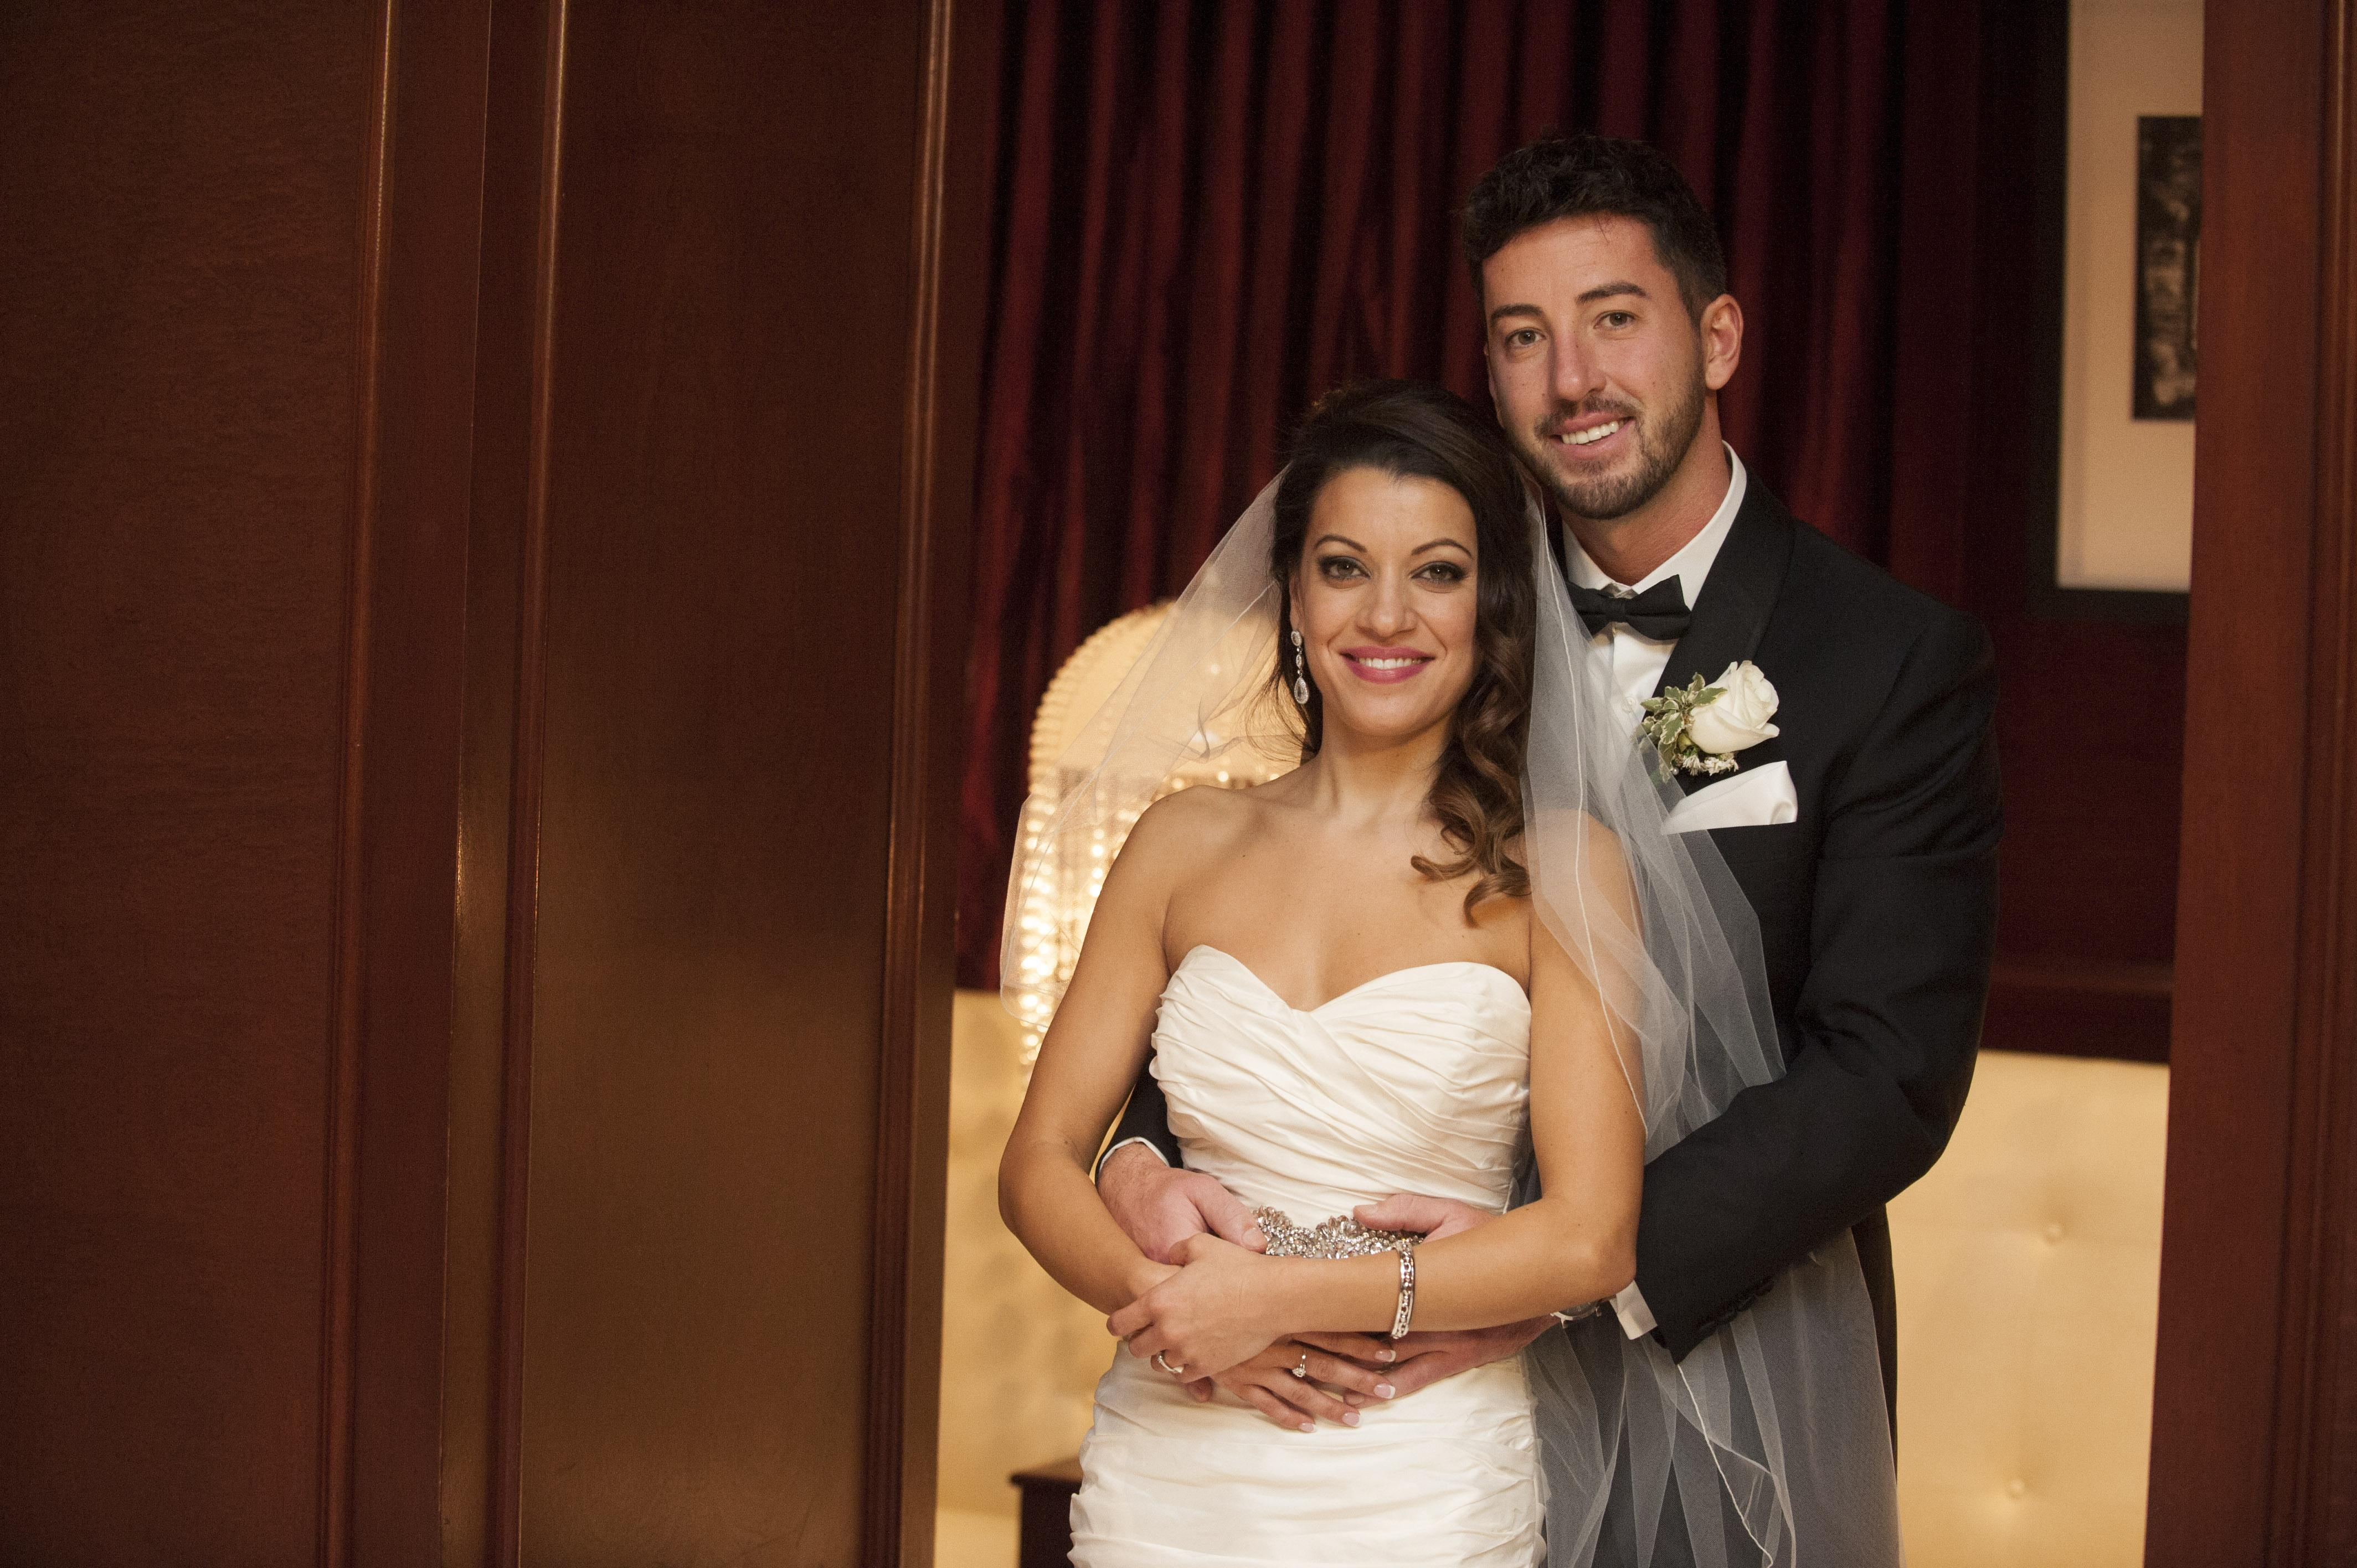 All The 'Married At First Sight' Divorces So Far